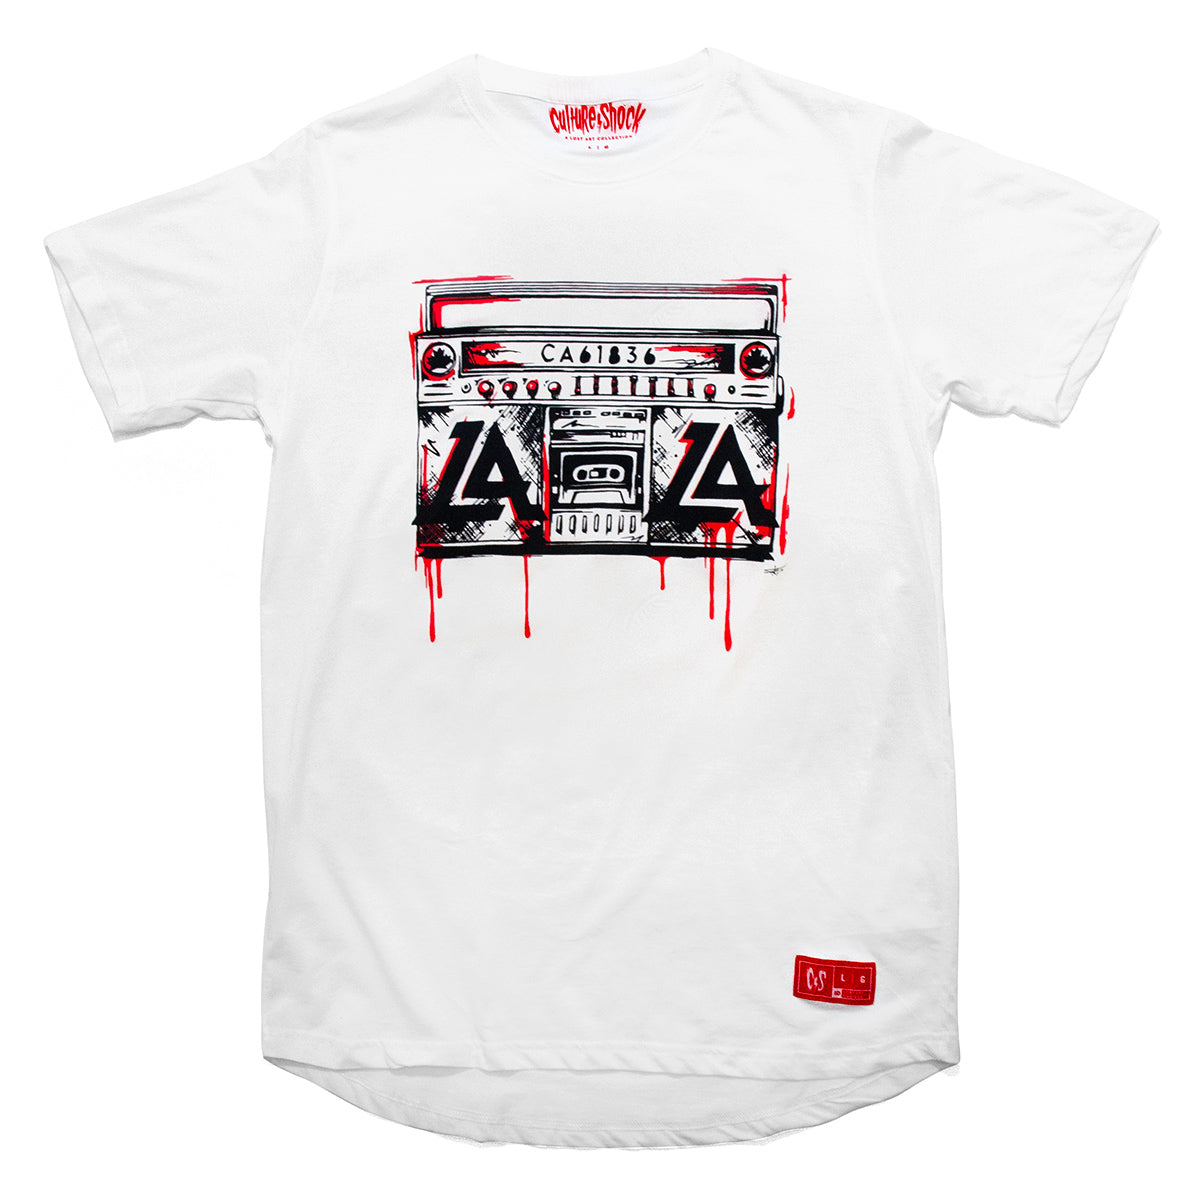 Culture Shock Canada - white Lost Art boombox tee front view